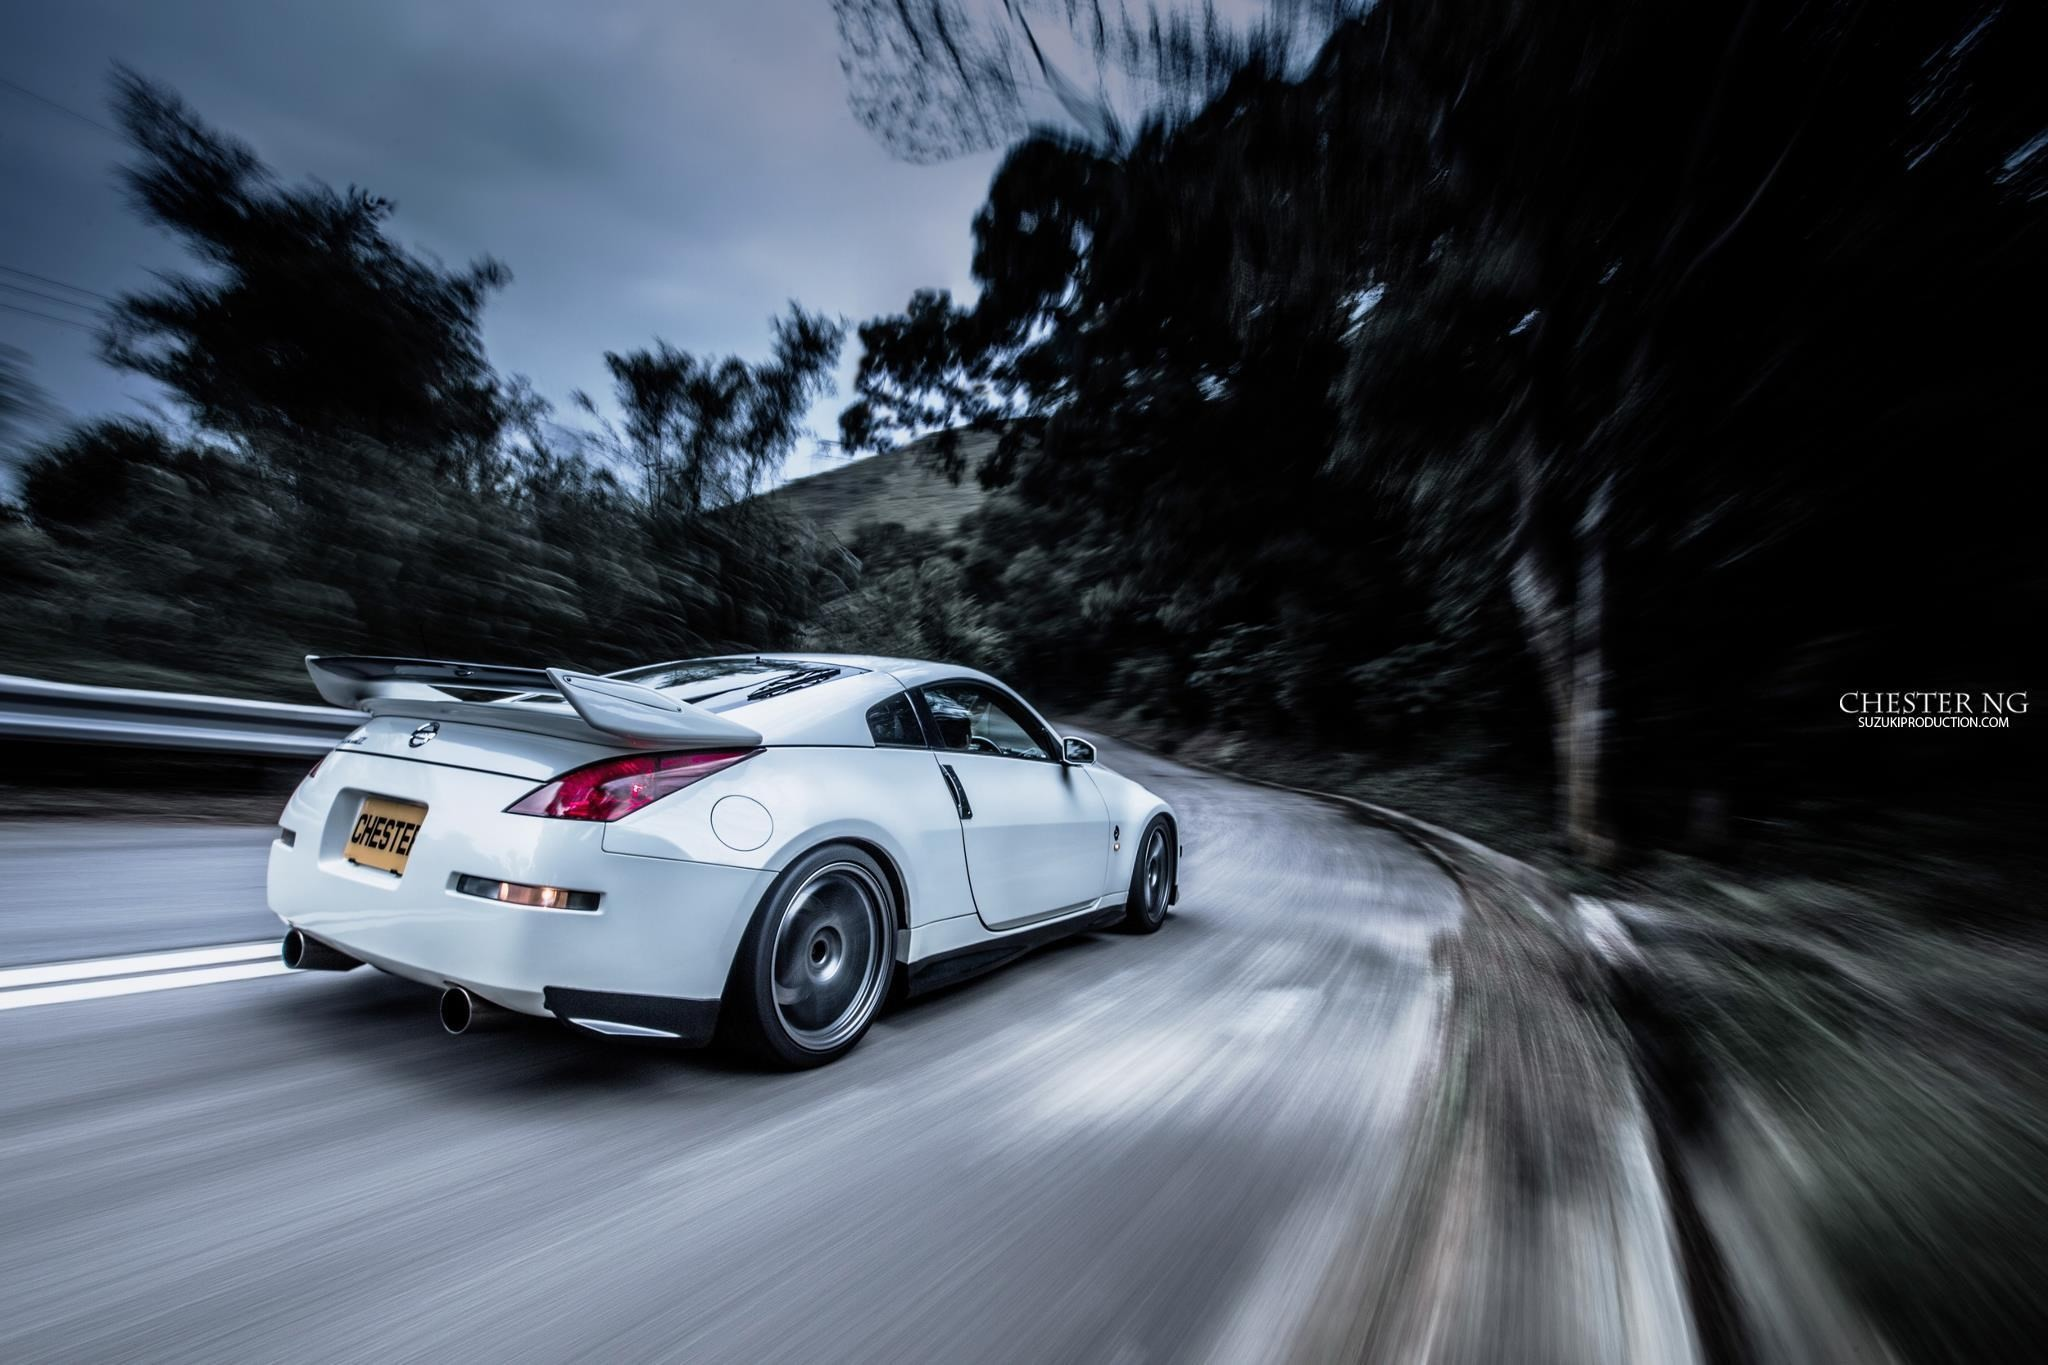 2048x1365 nissan 350z wallpaper: High Definition Backgrounds (Asbury Blare )